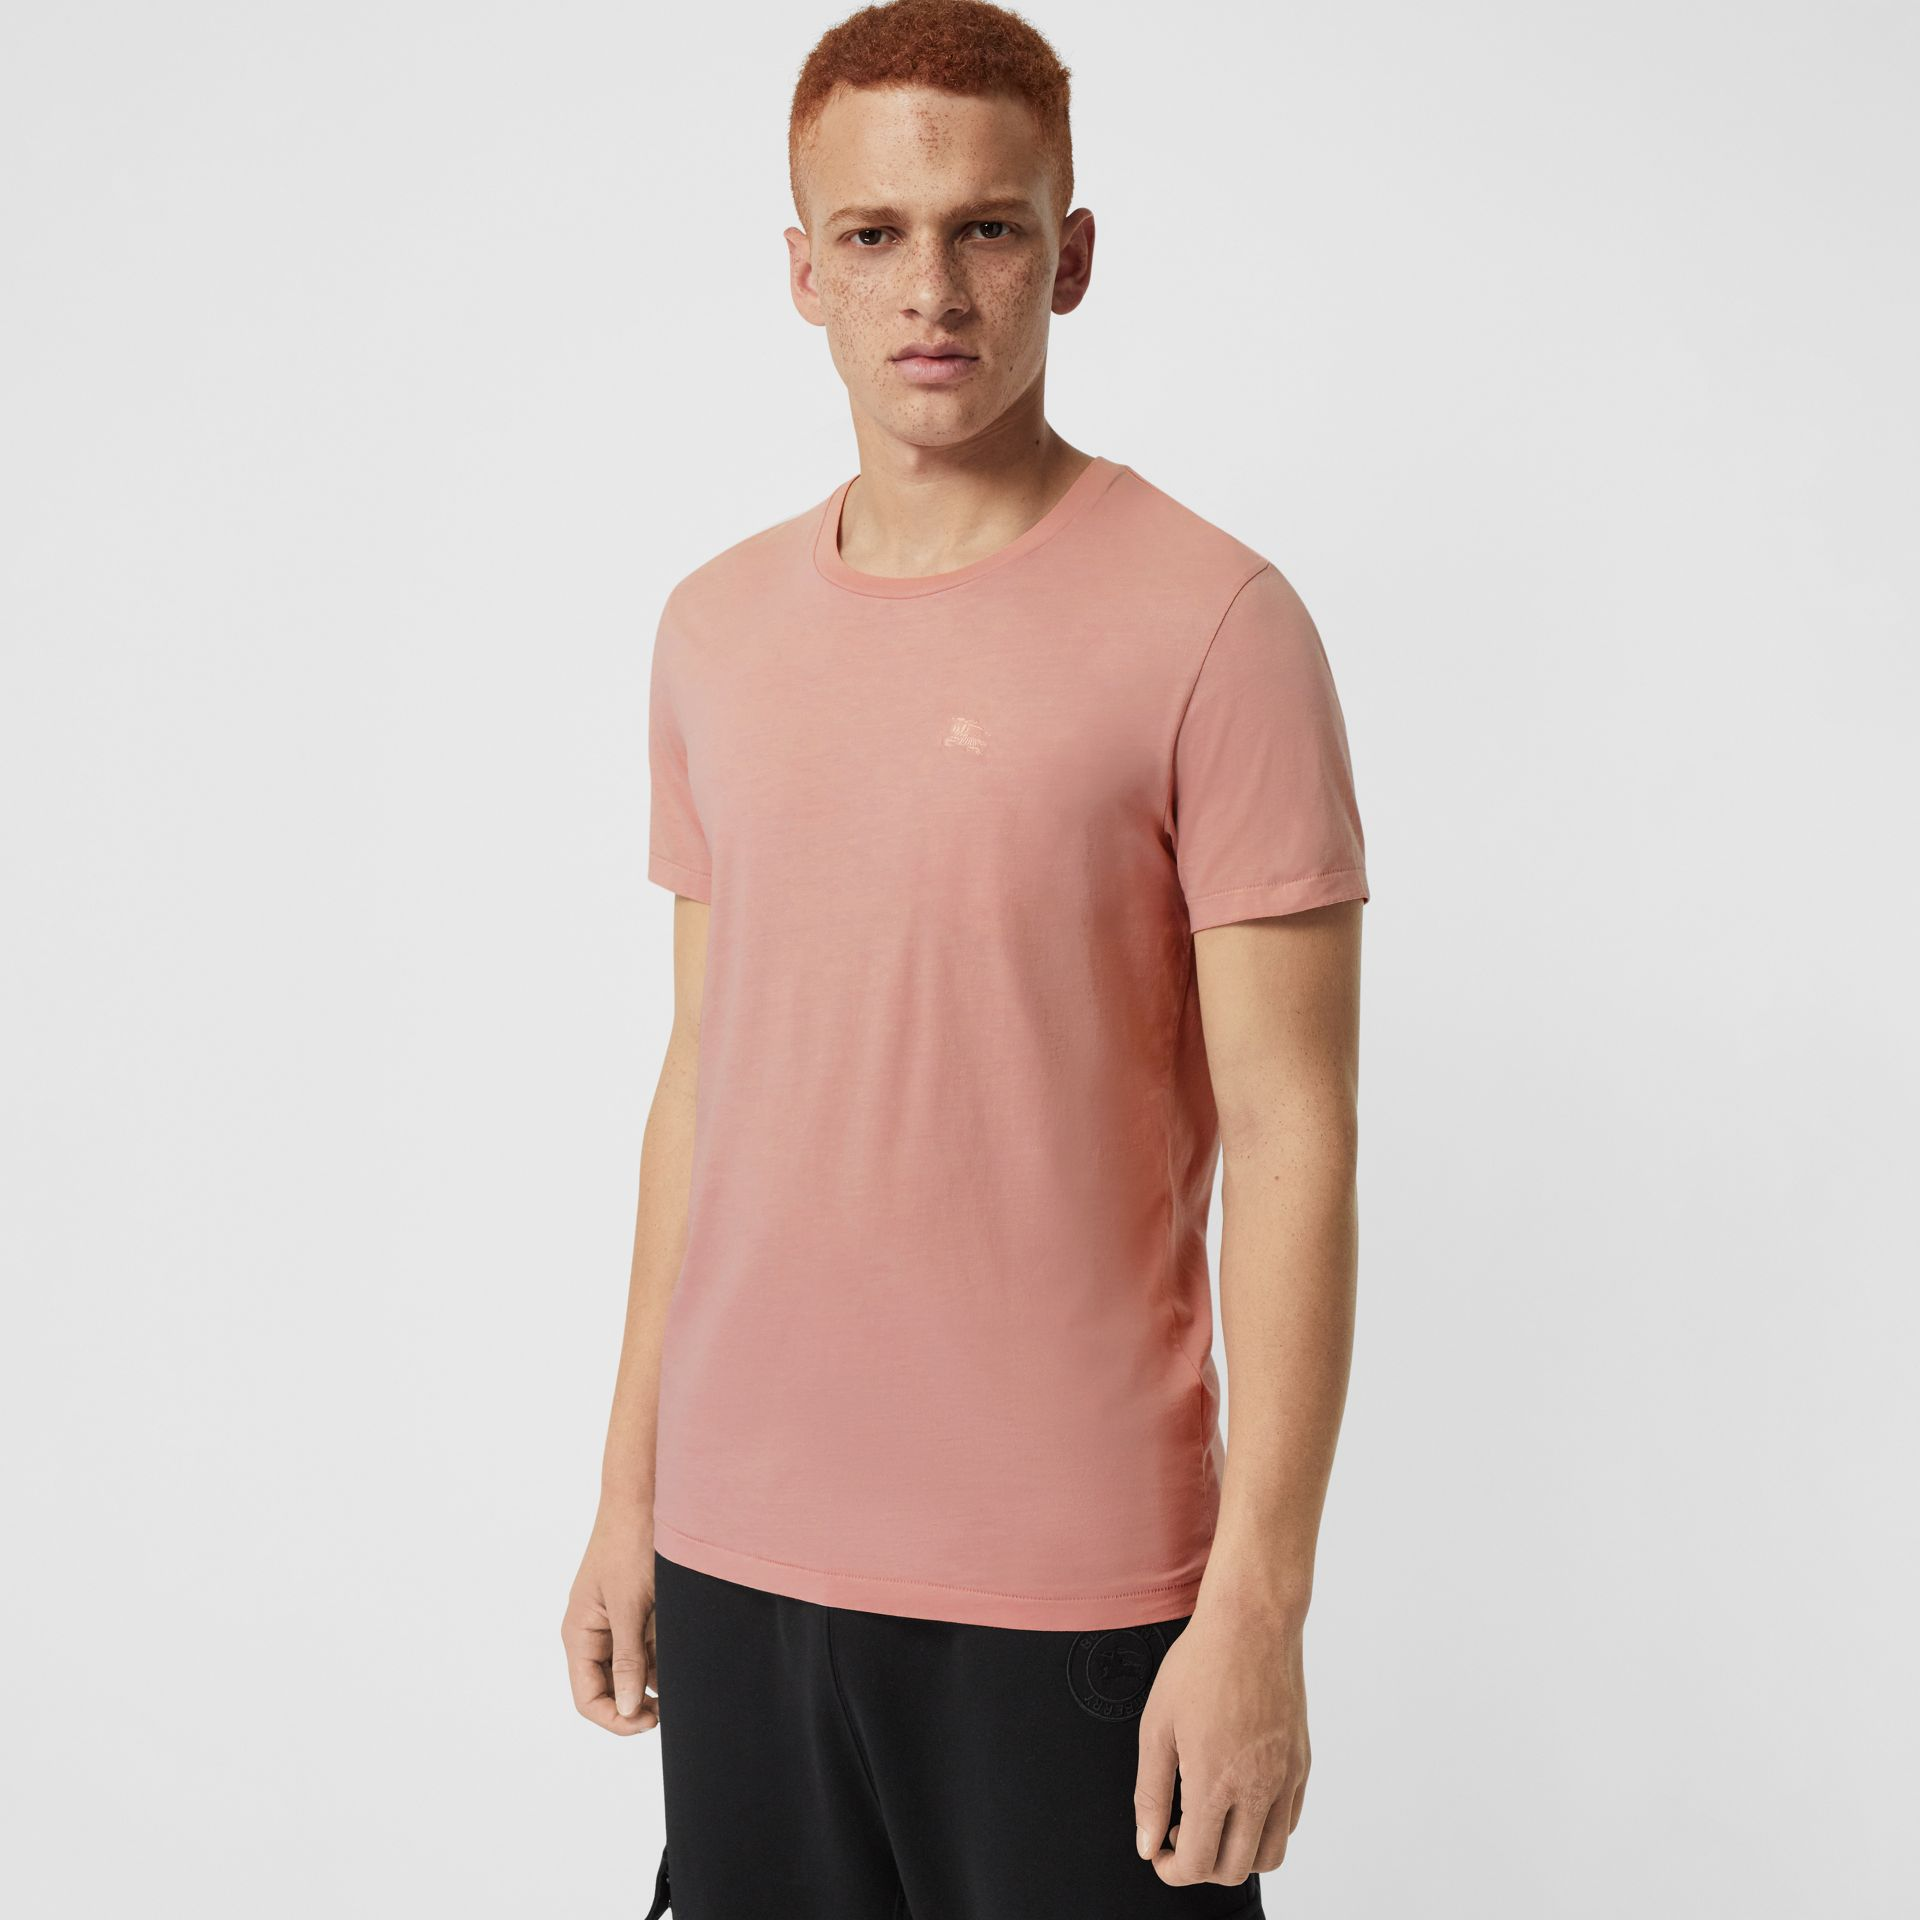 Cotton T-shirt in Chalk Pink - Men | Burberry - gallery image 0